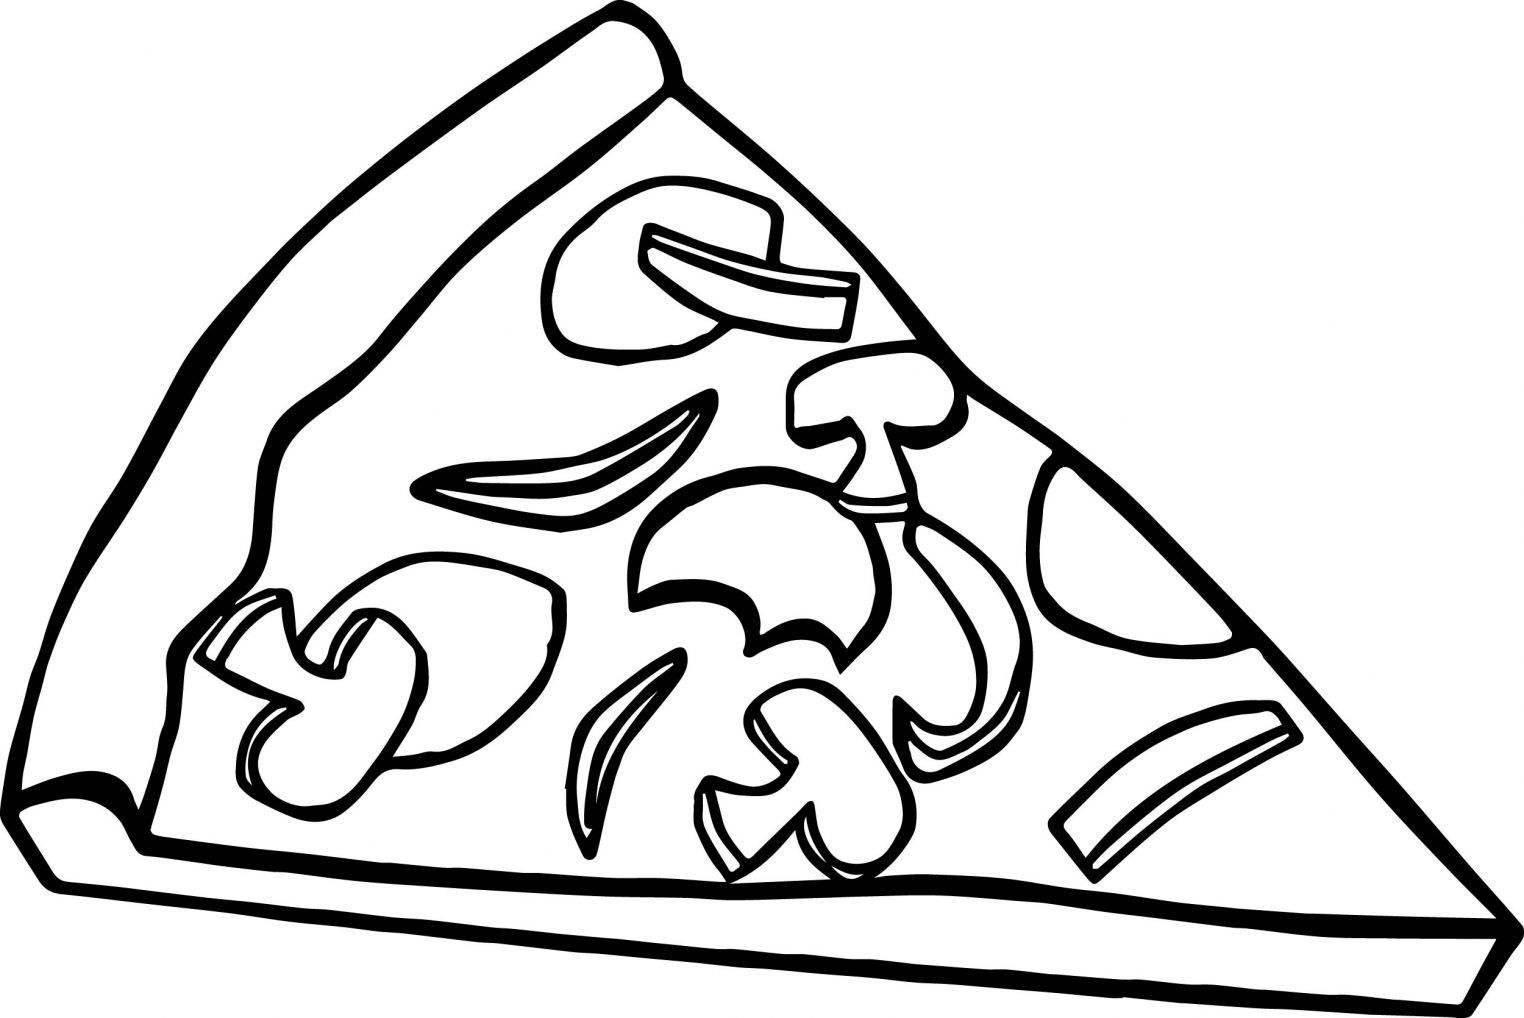 Top 15 Pizza Coloring Pages Only Coloring Pages Pizza Coloring